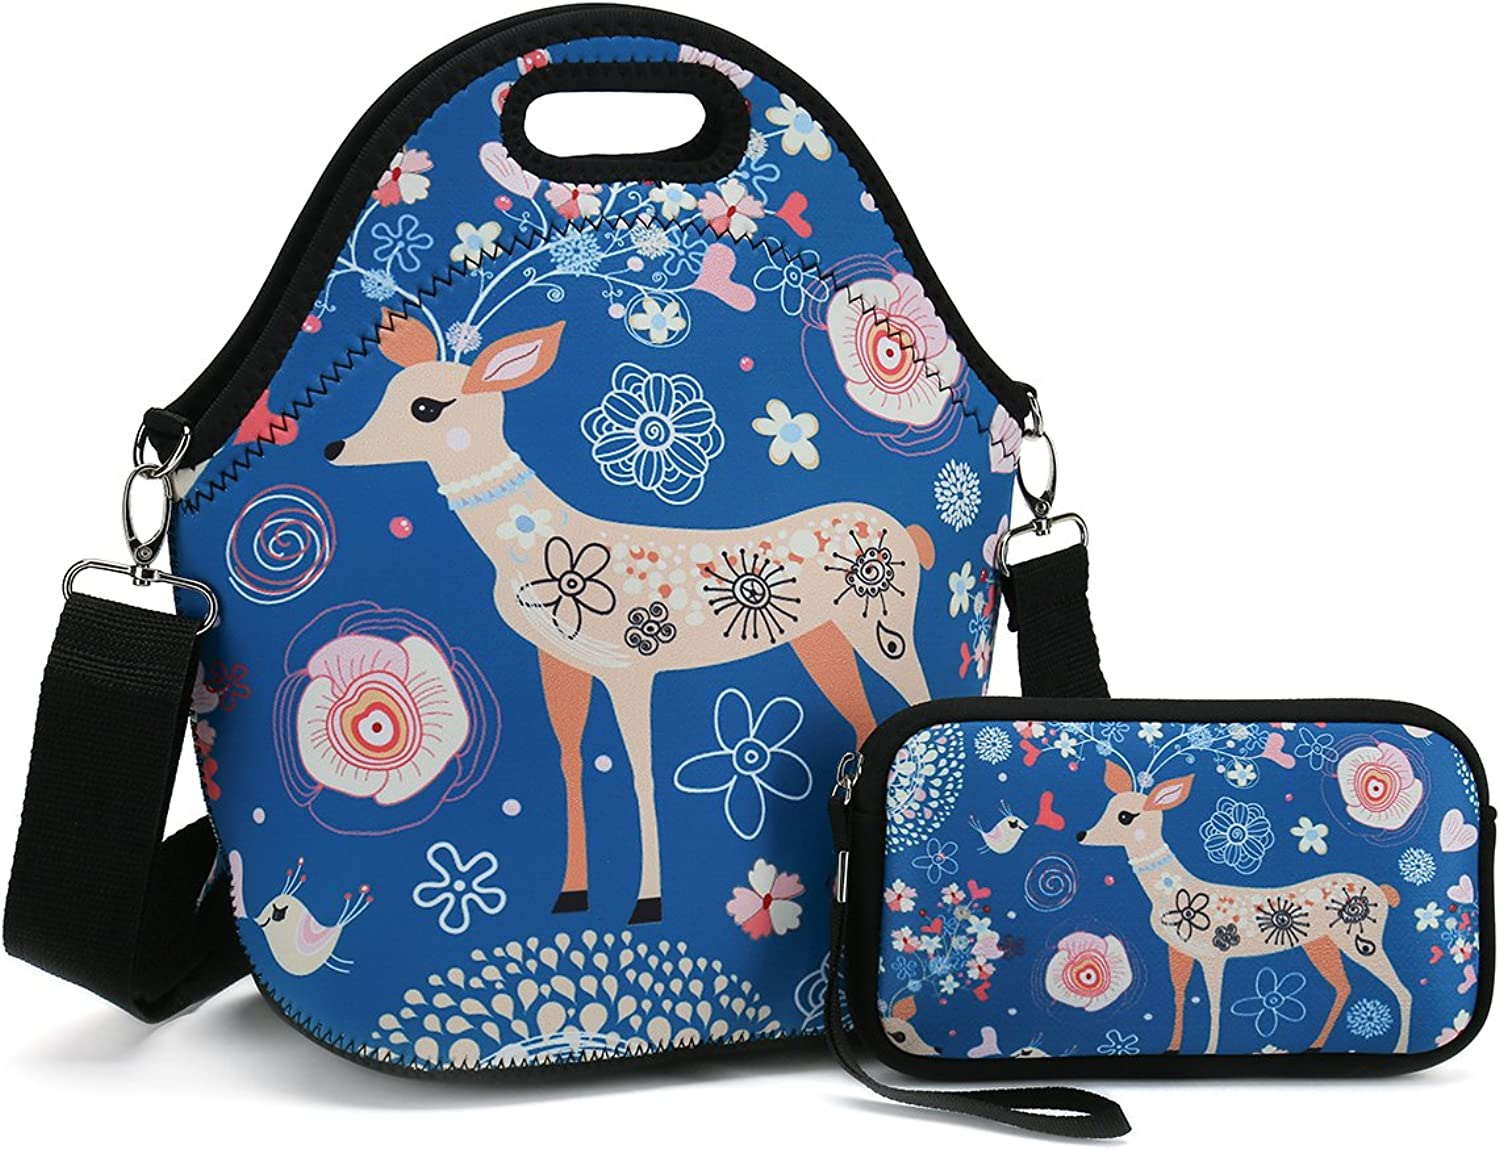 Insulated Neoprene Lunch Bag-Removable Shoulder Strap-X Large Size Reusable Thermal Thick Lunch Tote Lunch Box Cooler Bag with Wallet Pouch for Women,Teens,Girls,Kids,Baby,Adults (Cute Deer)